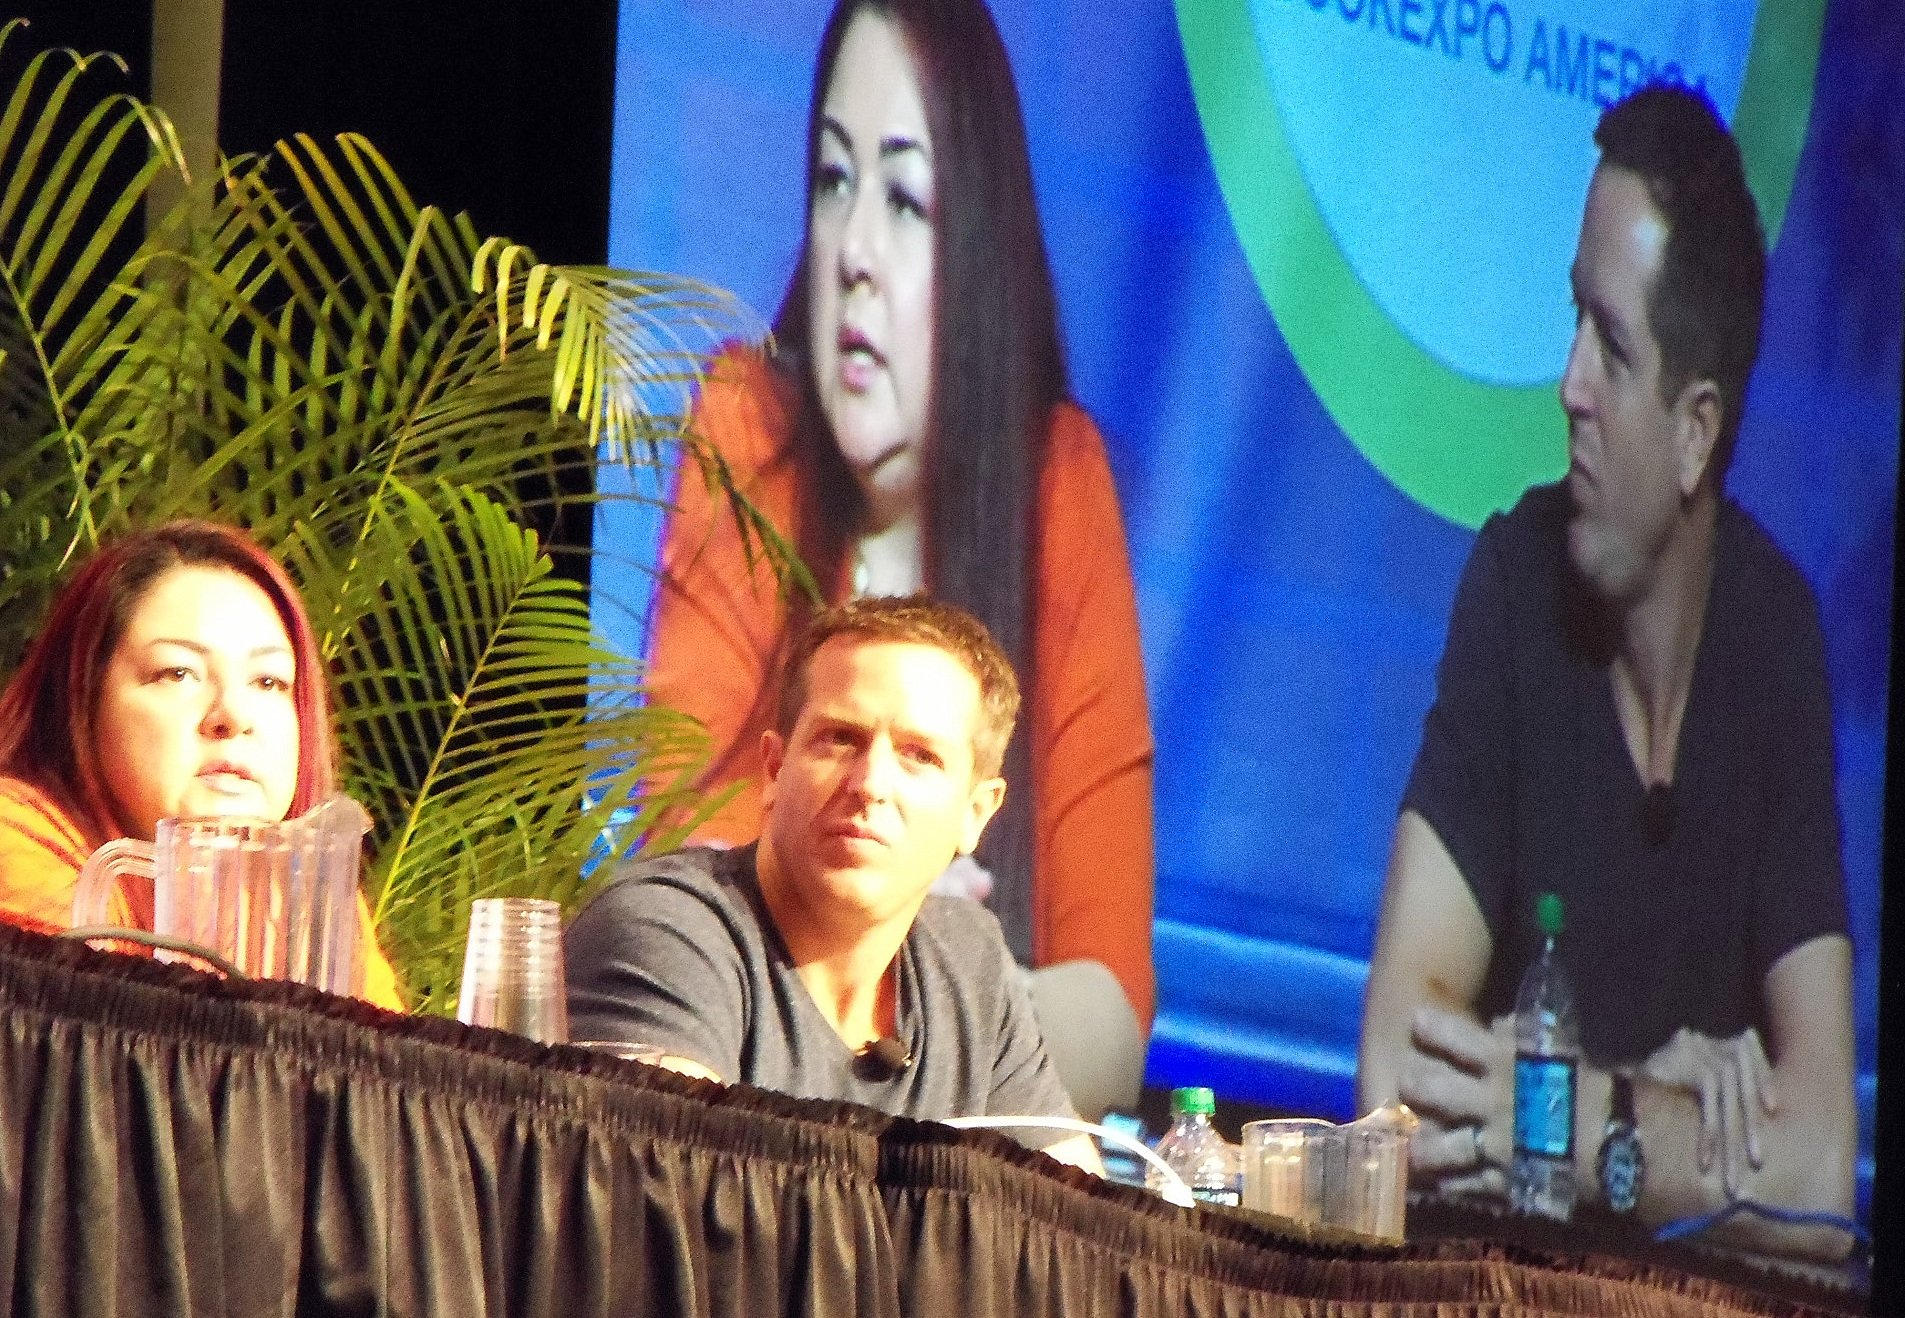 Bestselling Entrepreneurial Authors Sylvia Day And Hugh Howey Take  Questions At Idpf's Digital Book